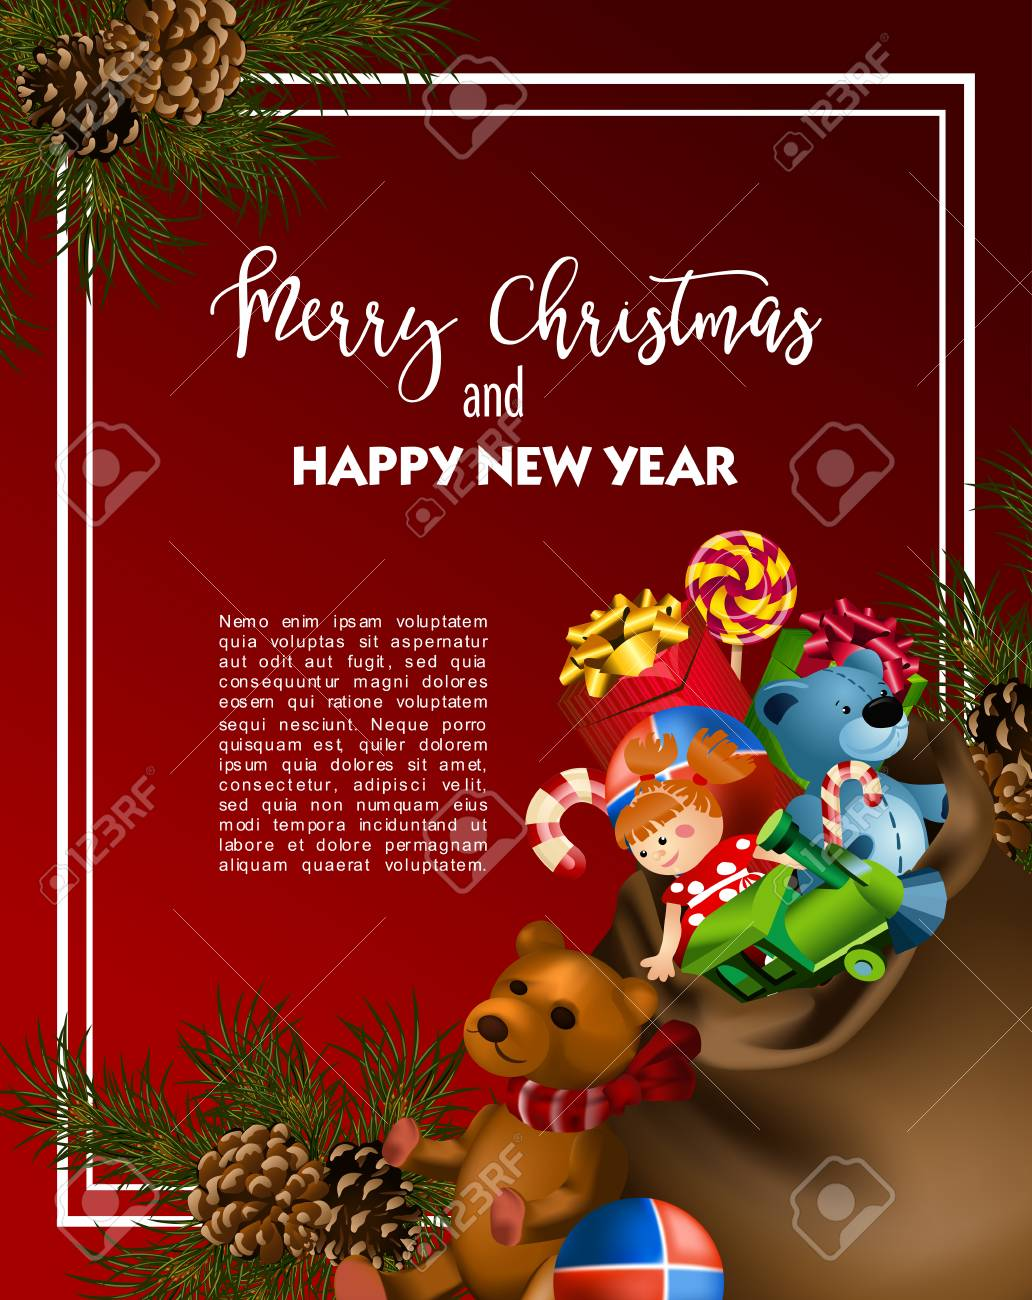 Christmas Greeting Card Template With Fir Tree And Vintage Toy